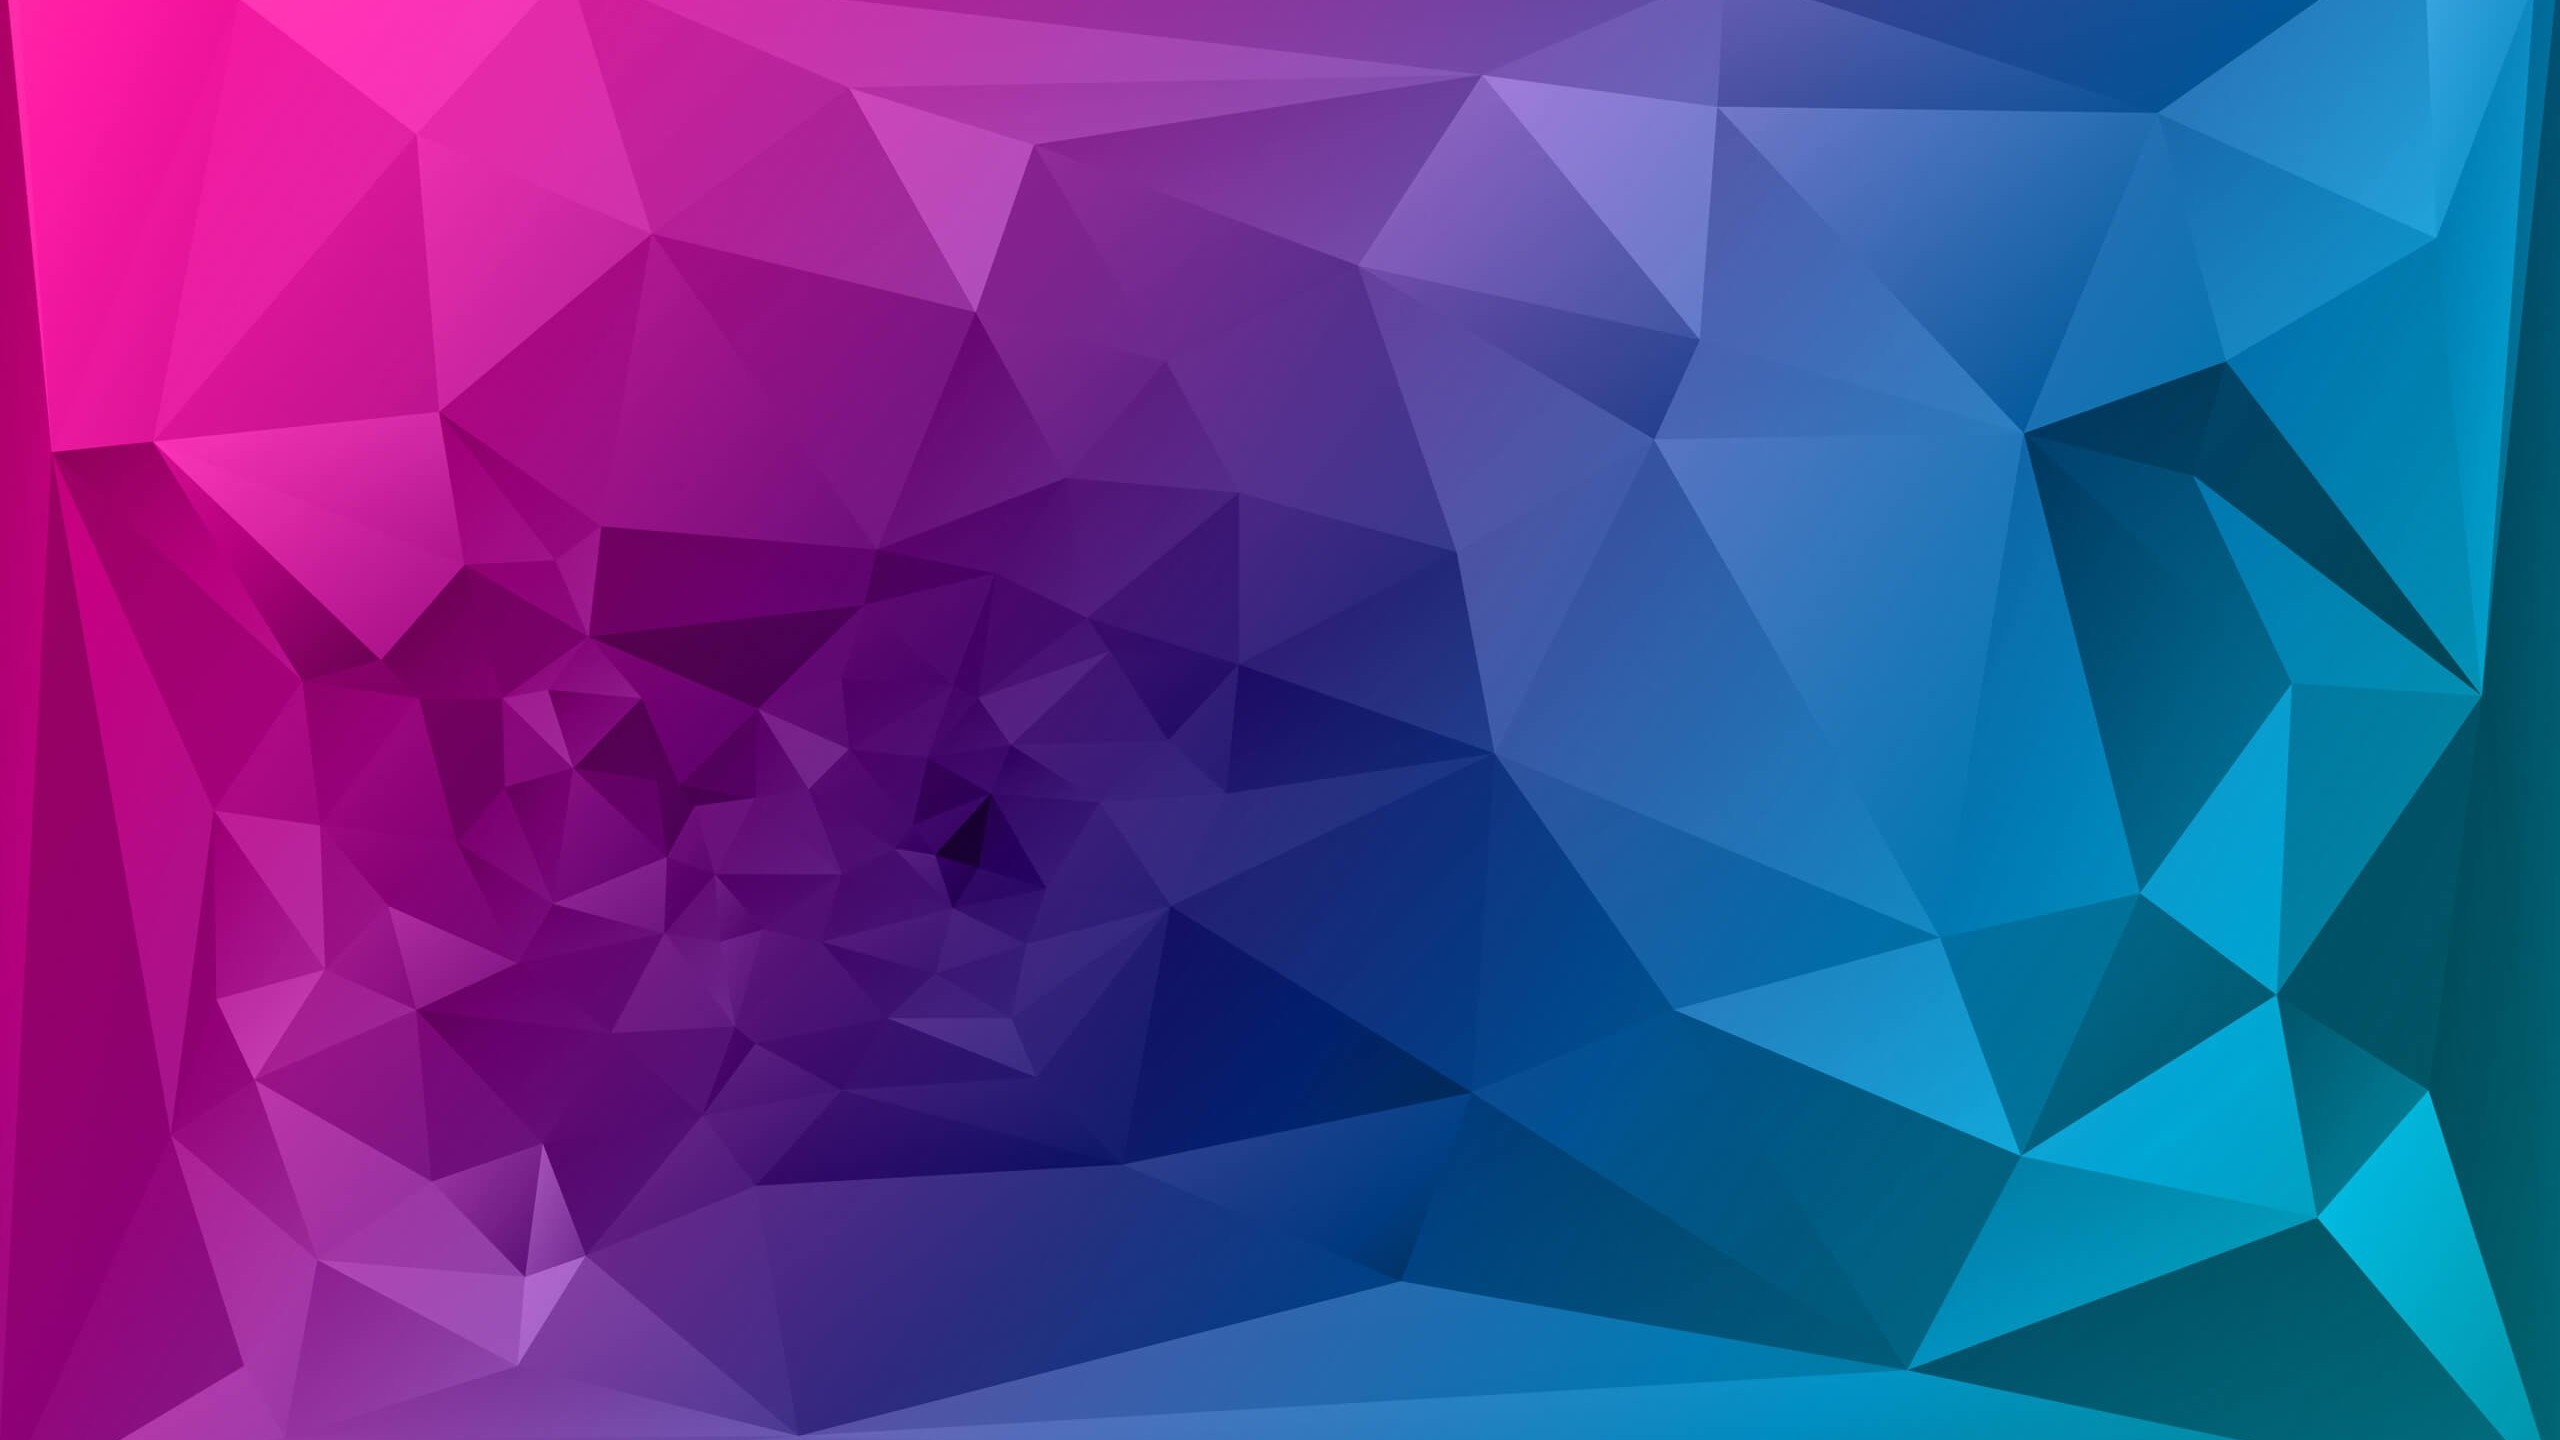 Purple Polygonal Background Wallpaper for Social Media YouTube Channel Art